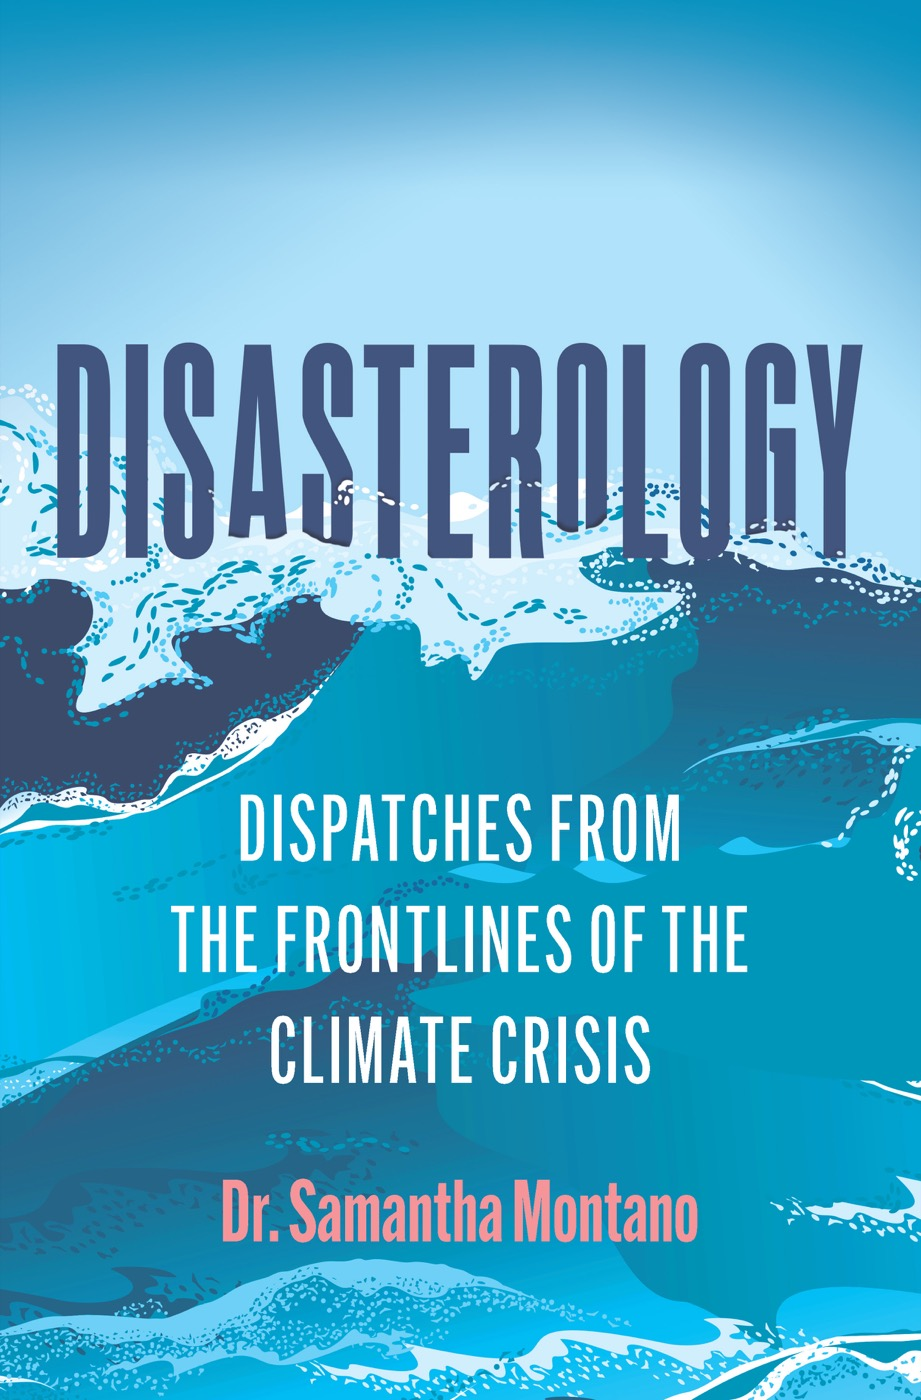 a book cover with illustration of a violent ocean with words 'Disasterology: Dispatches from the Frontlines of the Climate Crisis by dr. samantha montano'